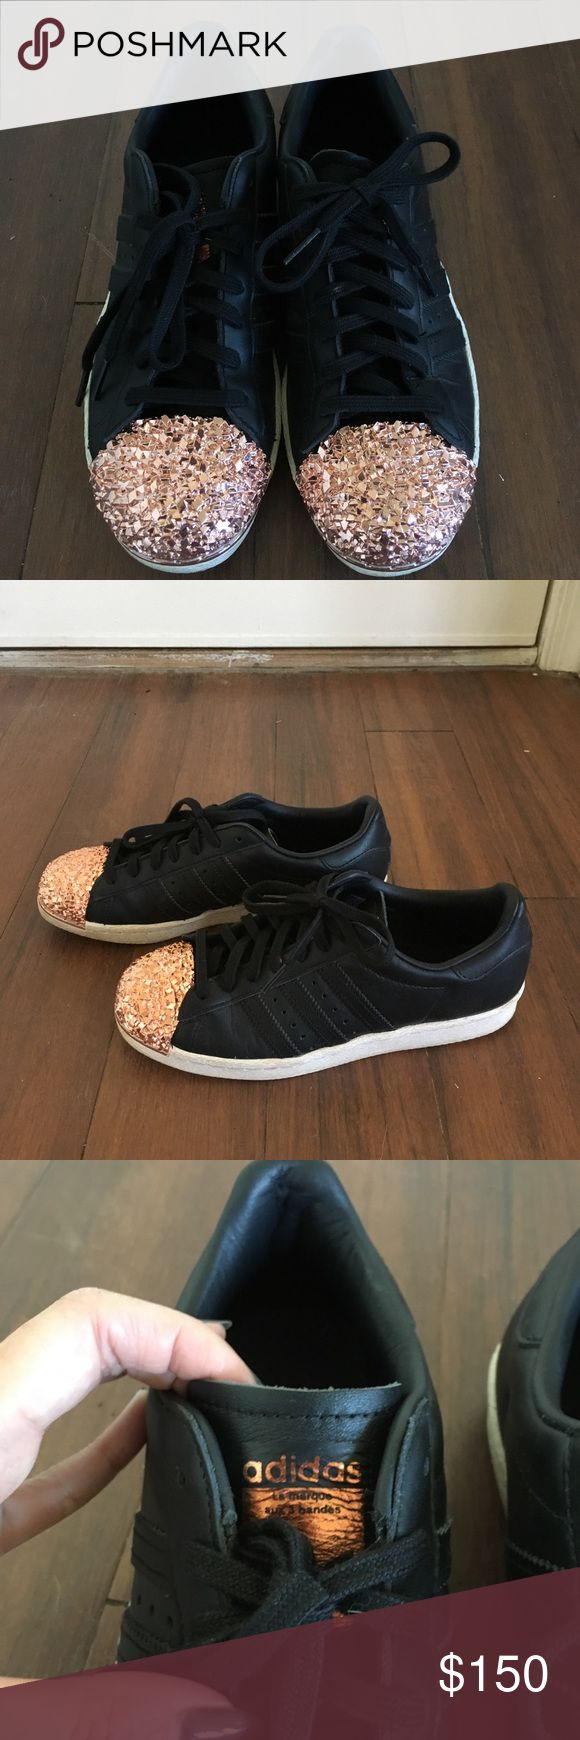 Adidas Black superstar Sneakers with rose gold toe Adidas originals black superstar sneakers with copper metal toe cap. Worn 5x. Near perfect condition. adidas Shoes Sneakers